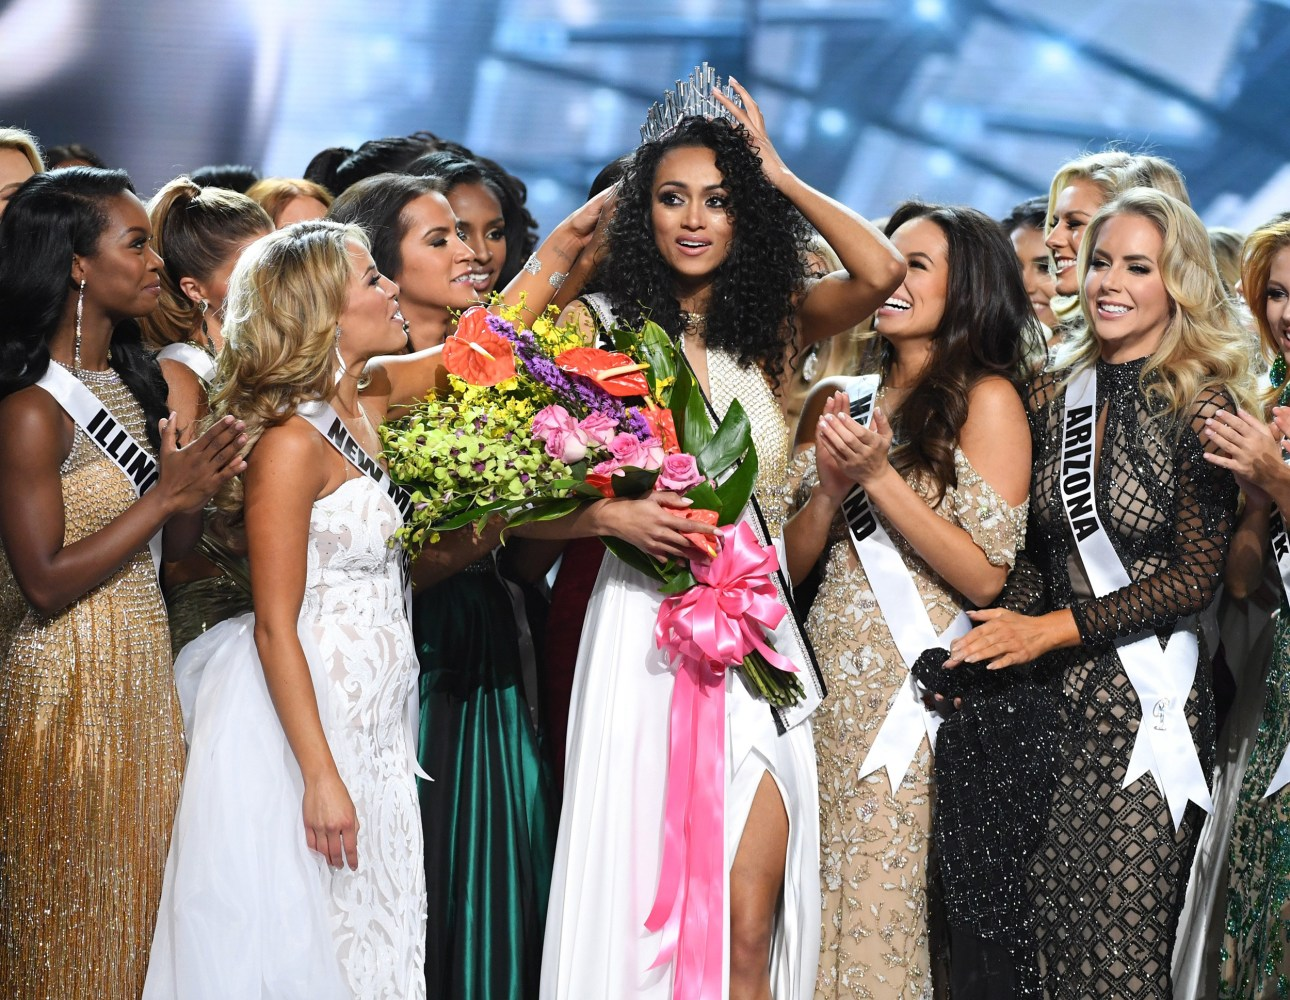 Gretchen Carlson: 'Stay tuned' about changes to Miss America's swimsuit competition